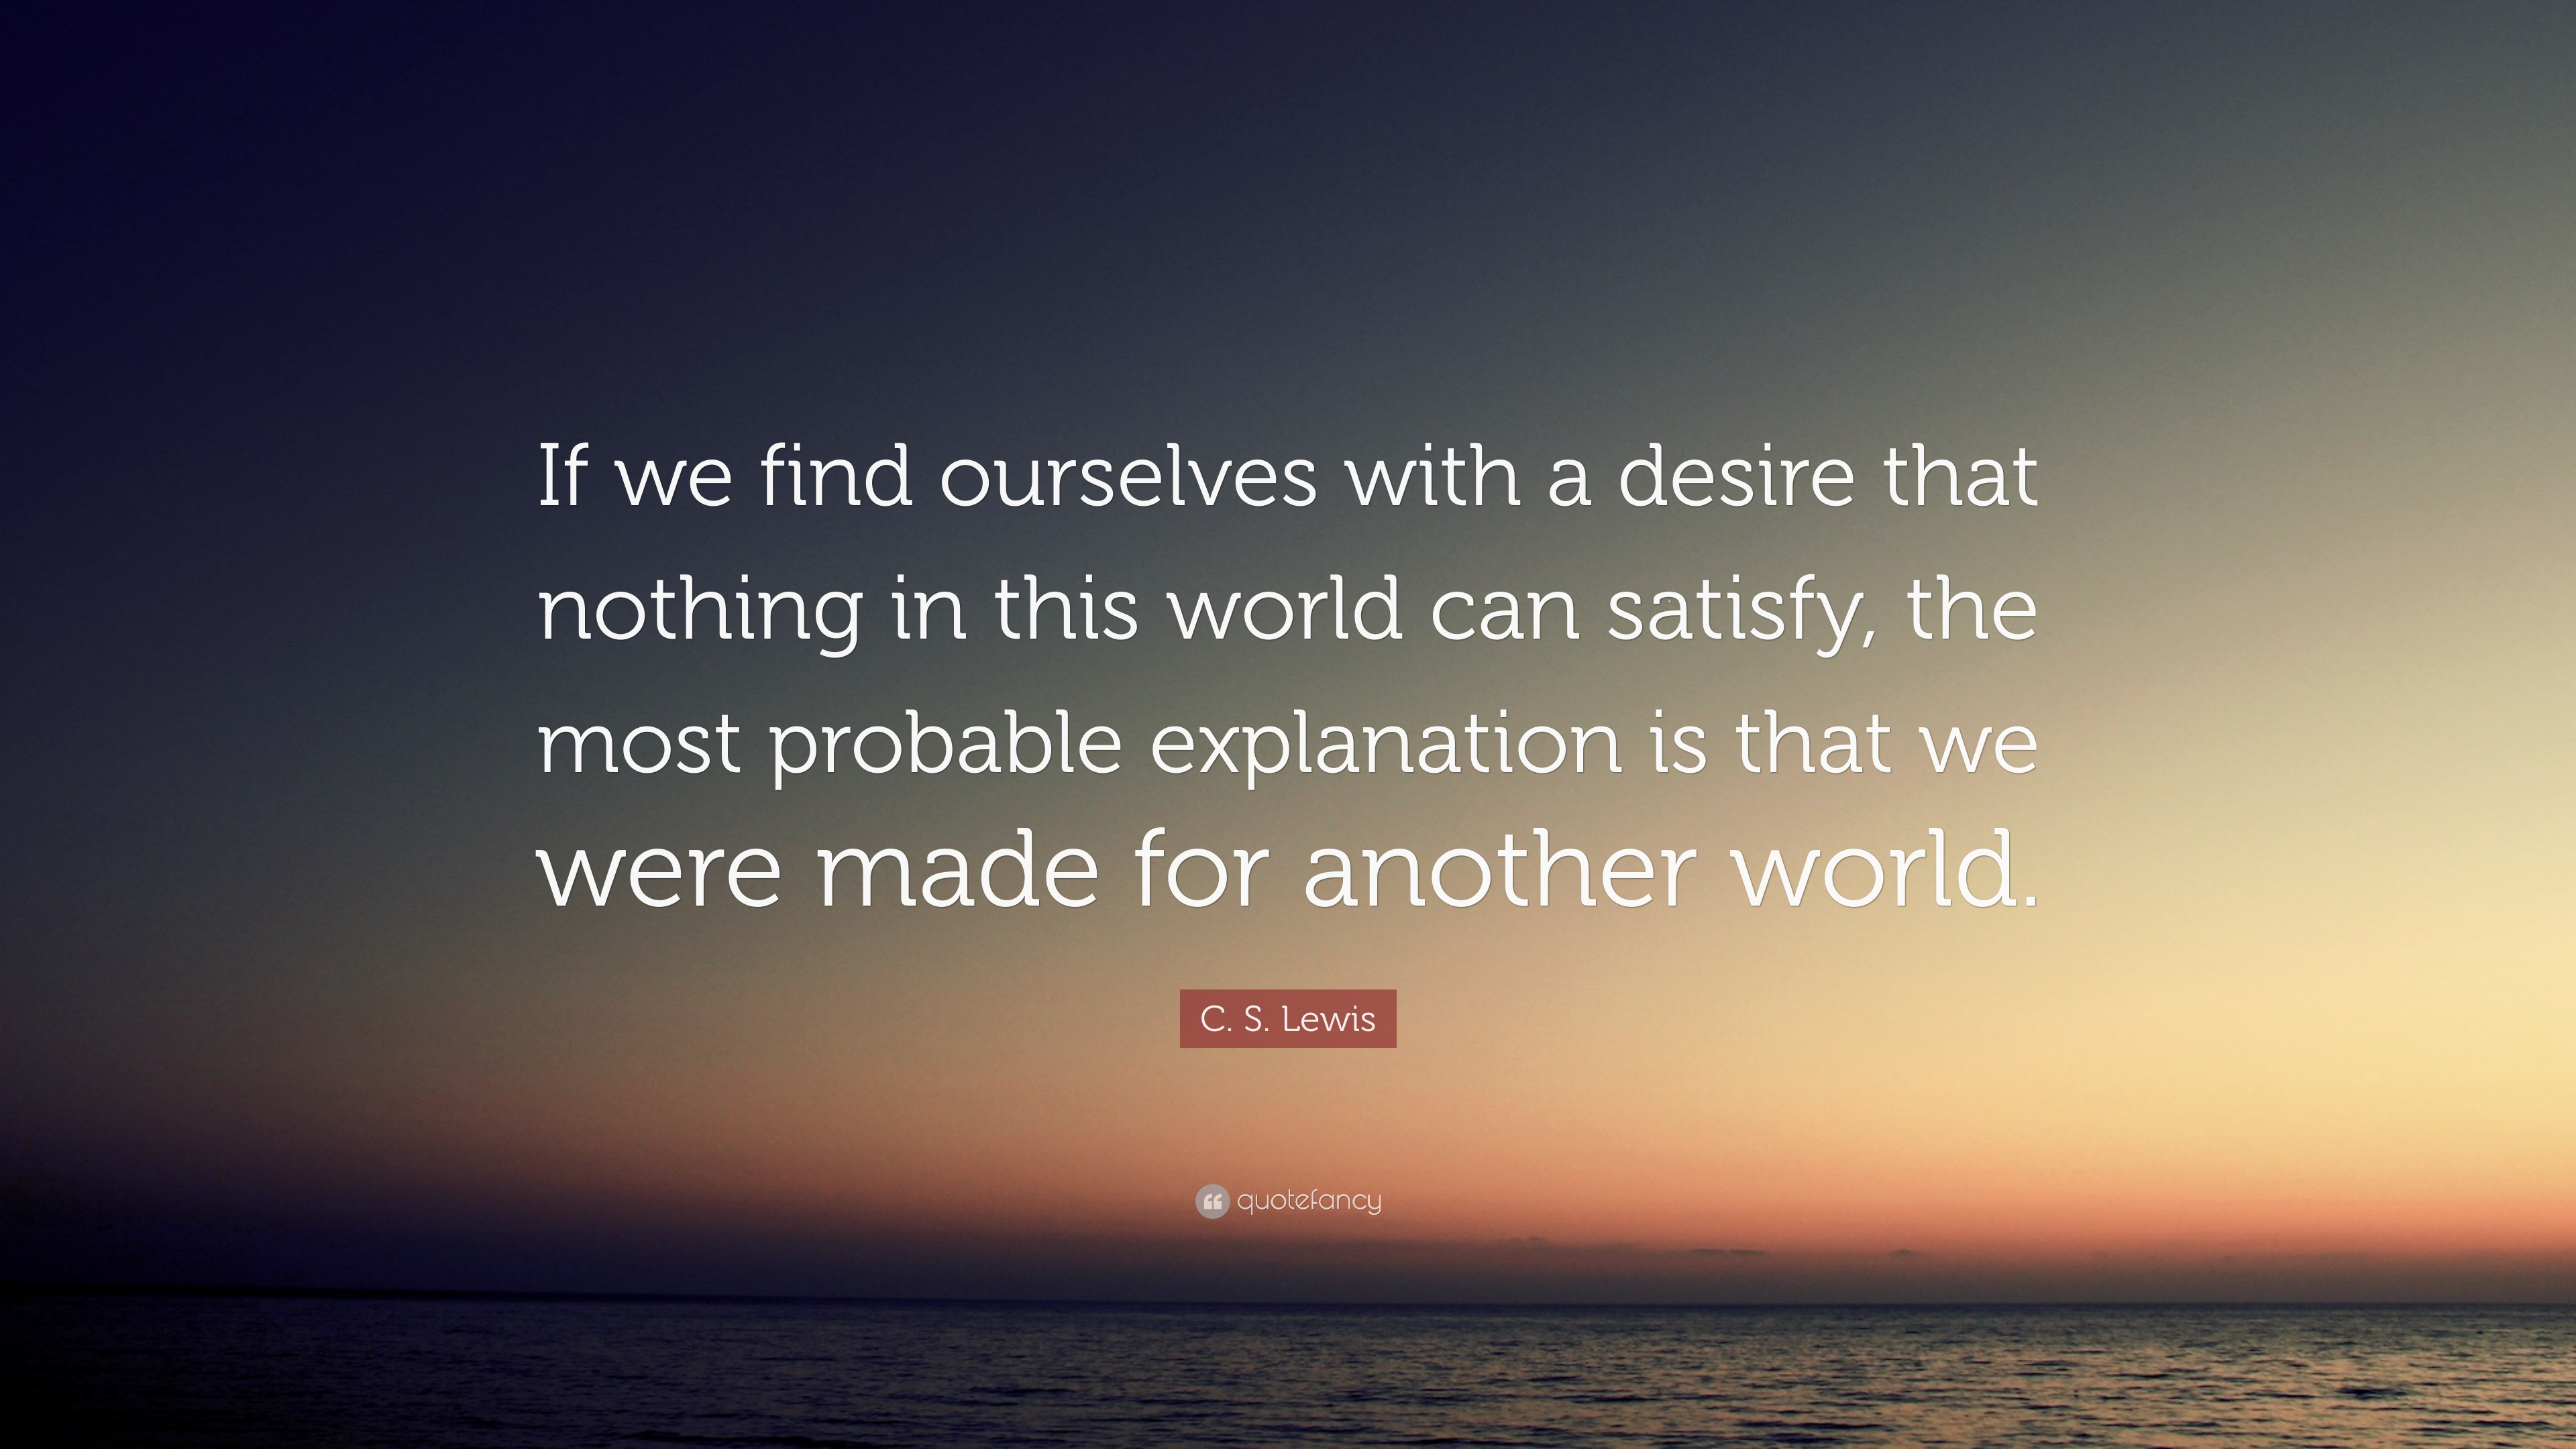 C S Lewis Quote If We Find Ourselves With A Desire That Nothing